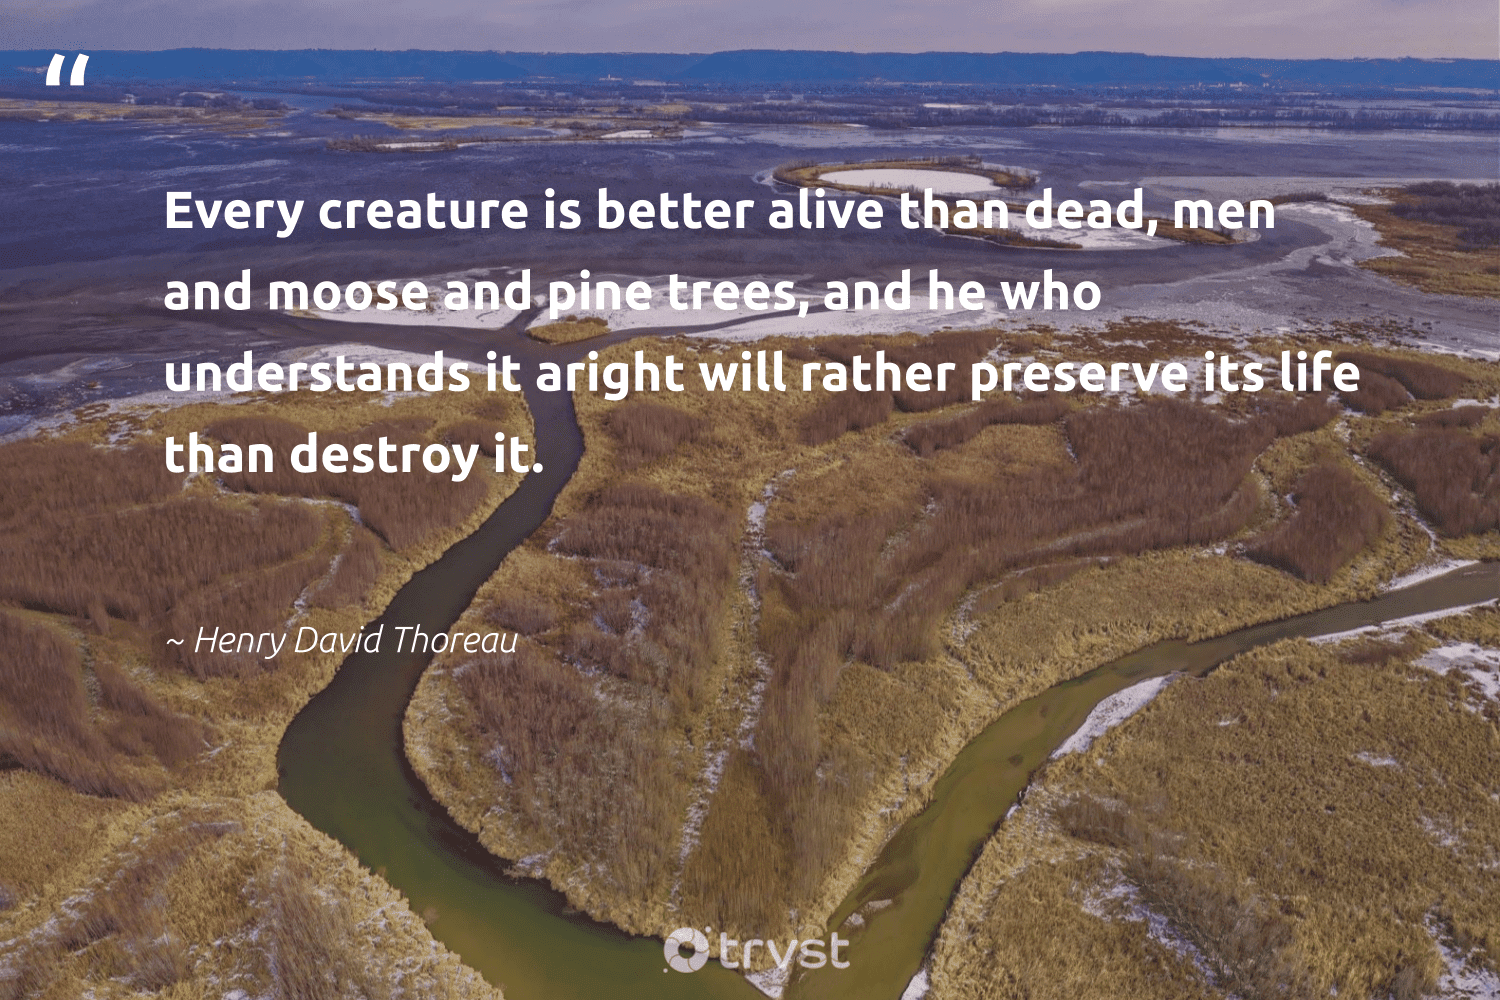 """""""Every creature is better alive than dead, men and moose and pine trees, and he who understands it aright will rather preserve its life than destroy it.""""  - Henry David Thoreau #trvst #quotes #deforestation #trees #plantatree #wildernessnation #ecofriendly #dotherightthing #rainforest #environmentallyfriendly #green #beinspired"""